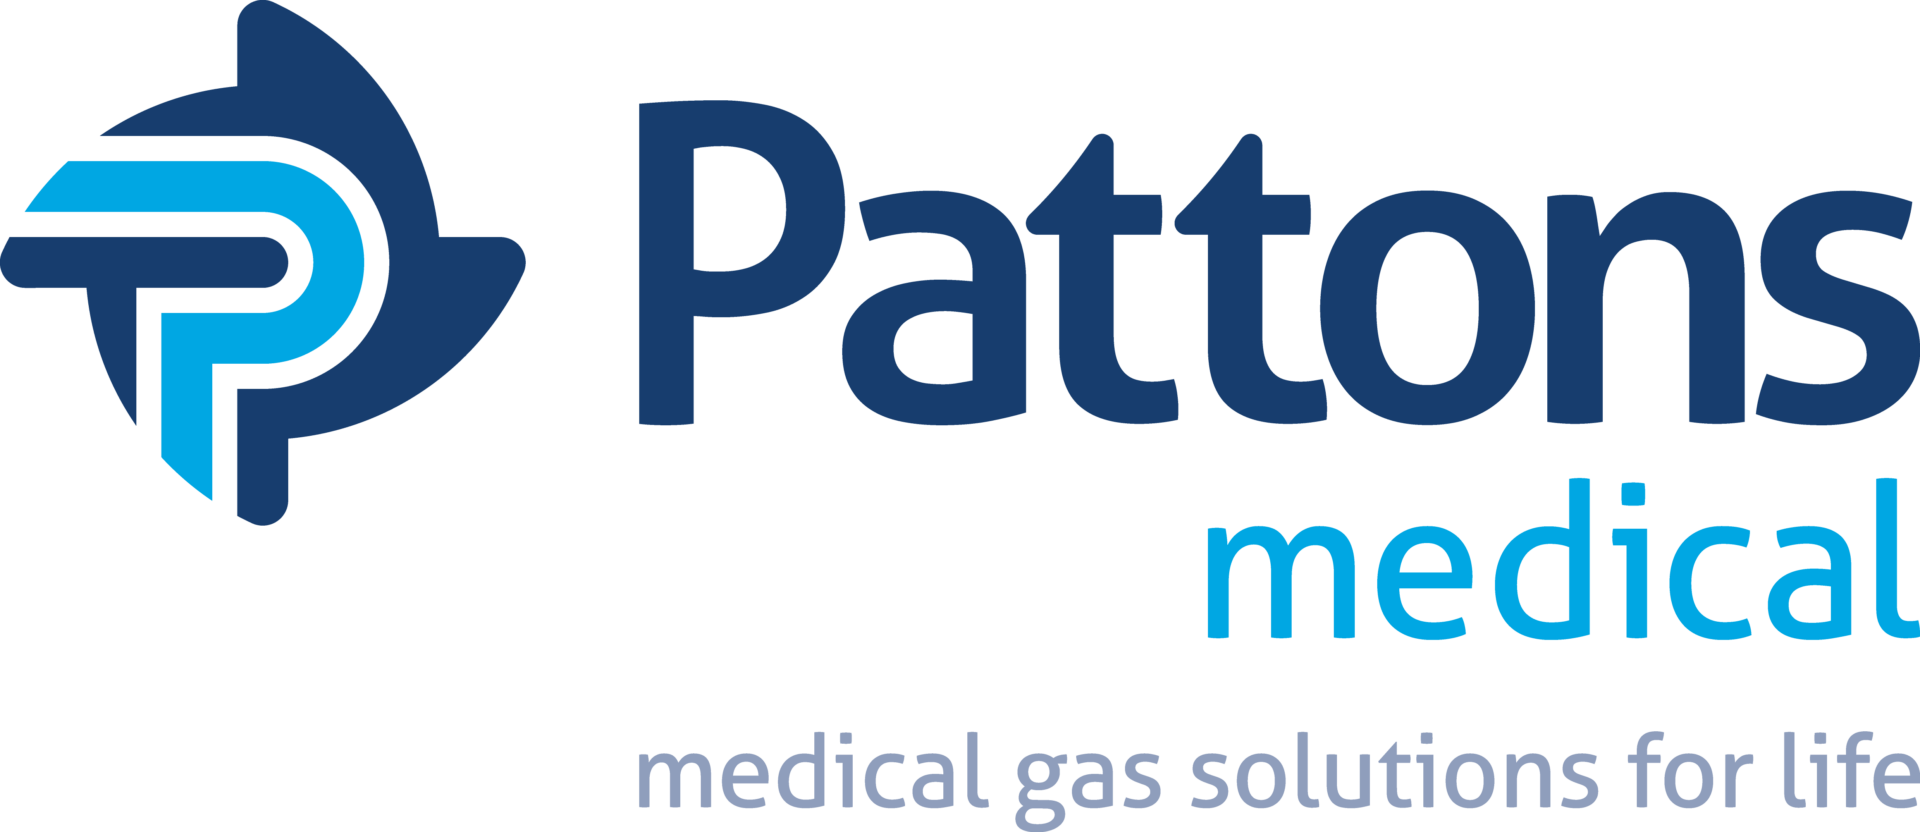 Pattons-Medical-Tagline